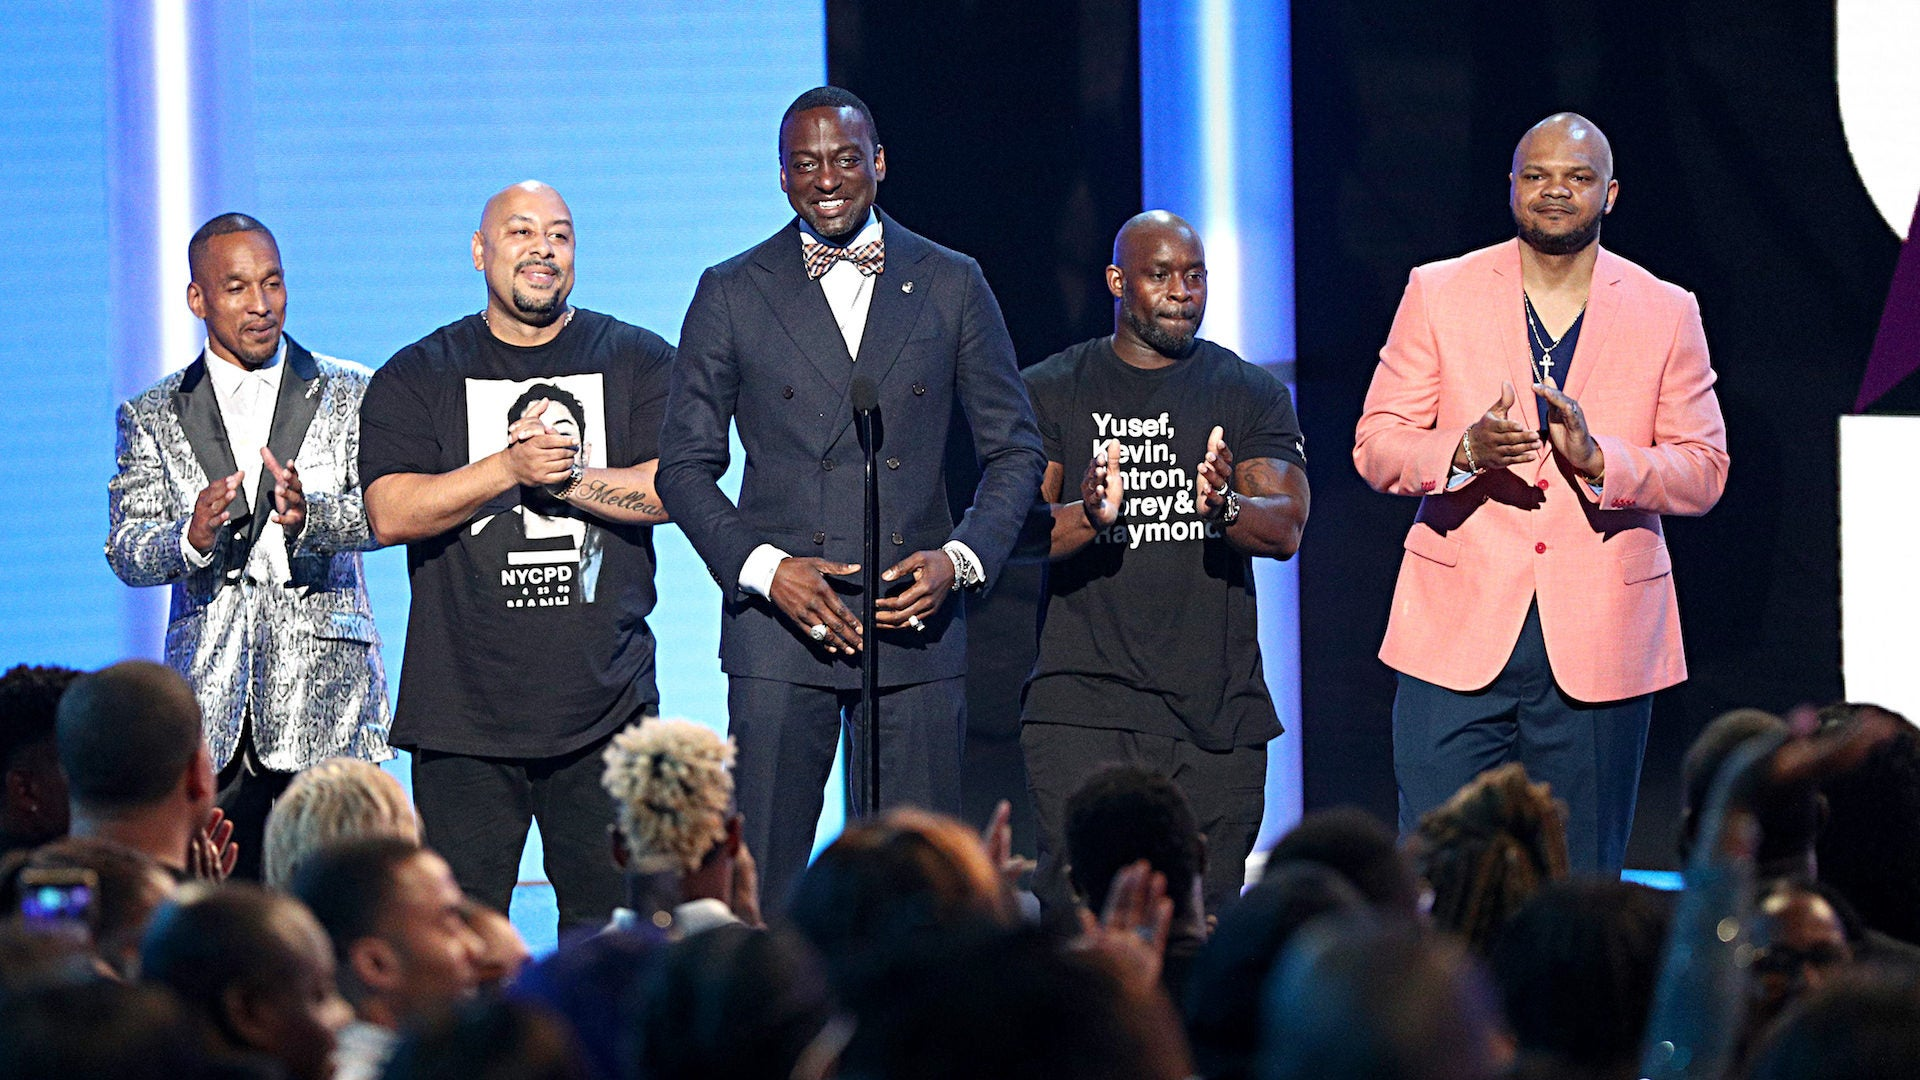 The Exonerated Five Get Standing Ovation At BET Awards 2019